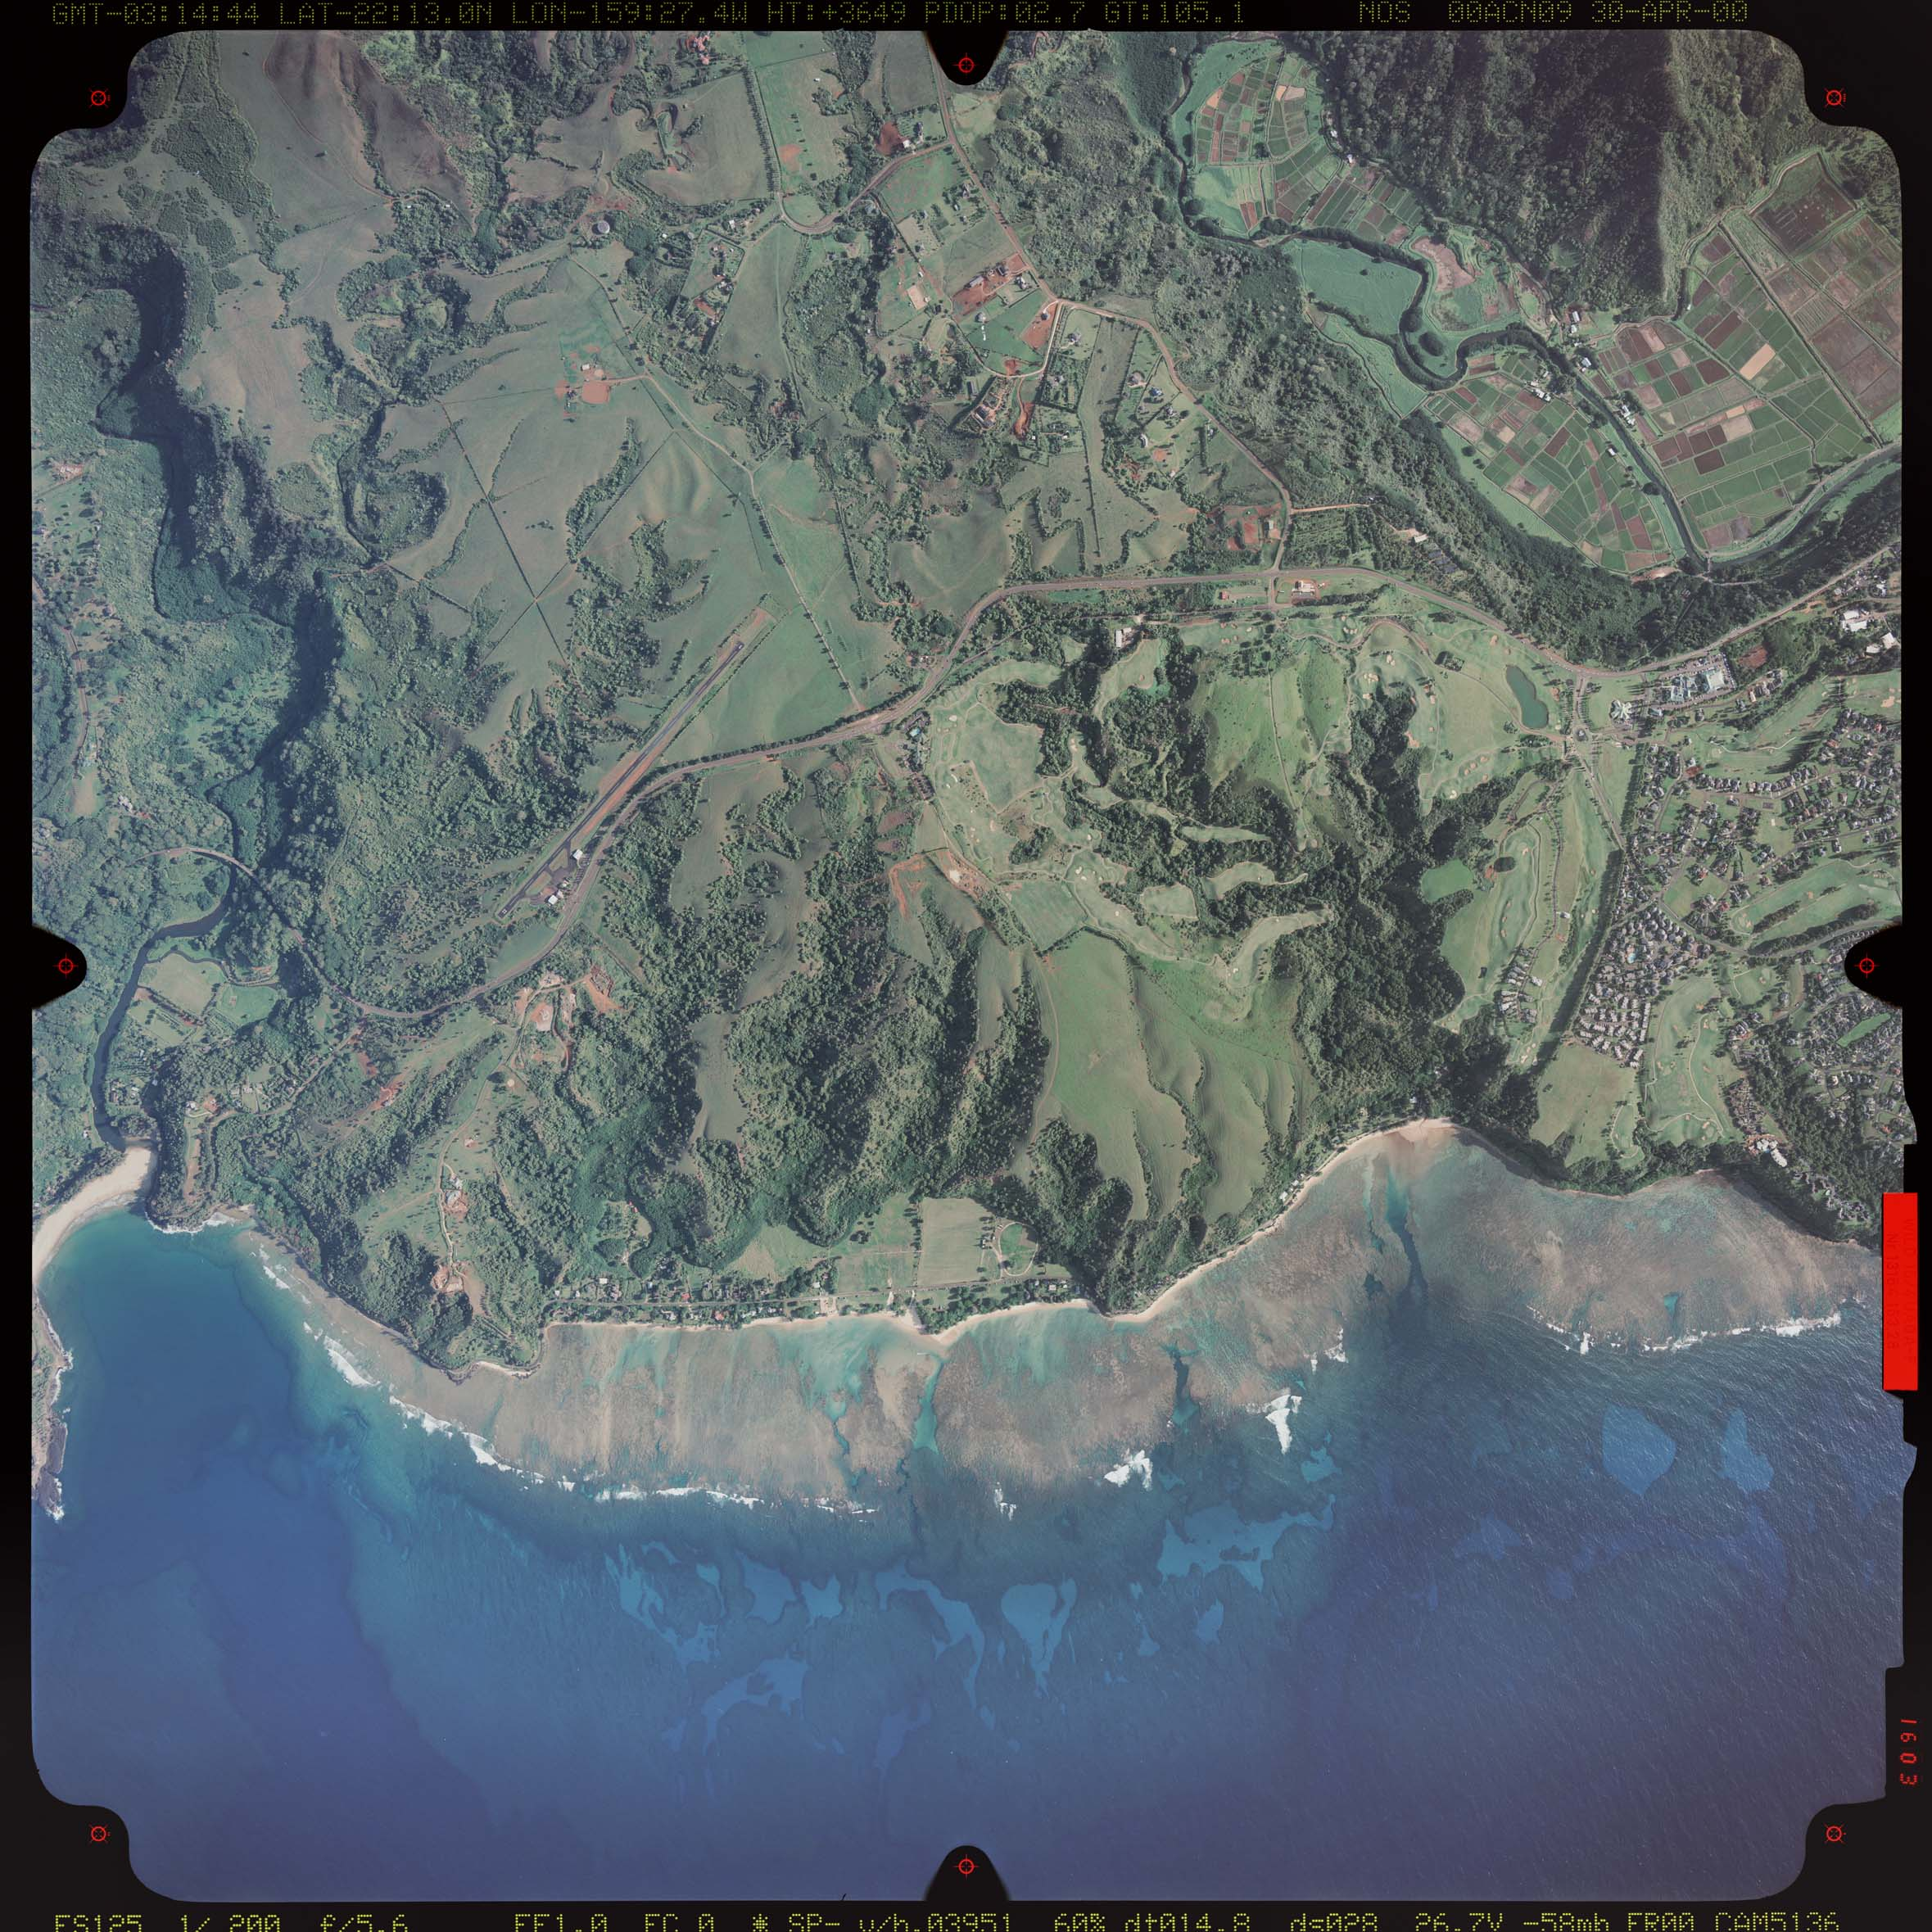 Aerial photograph of Princeville Airport taken in 2000